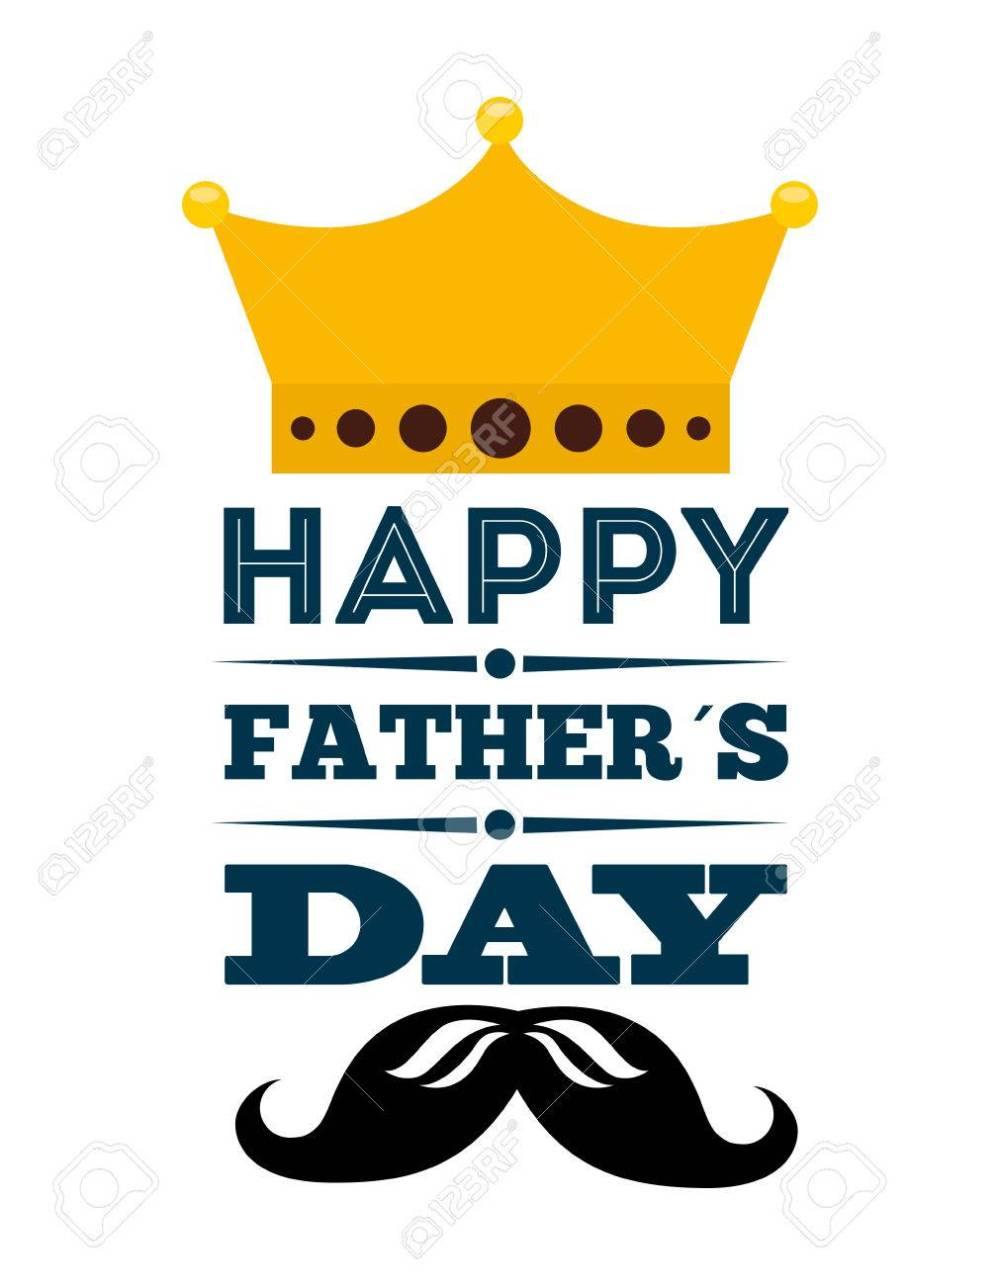 medium resolution of happy fathers day design vector illustration eps10 graphic stock vector 39296871